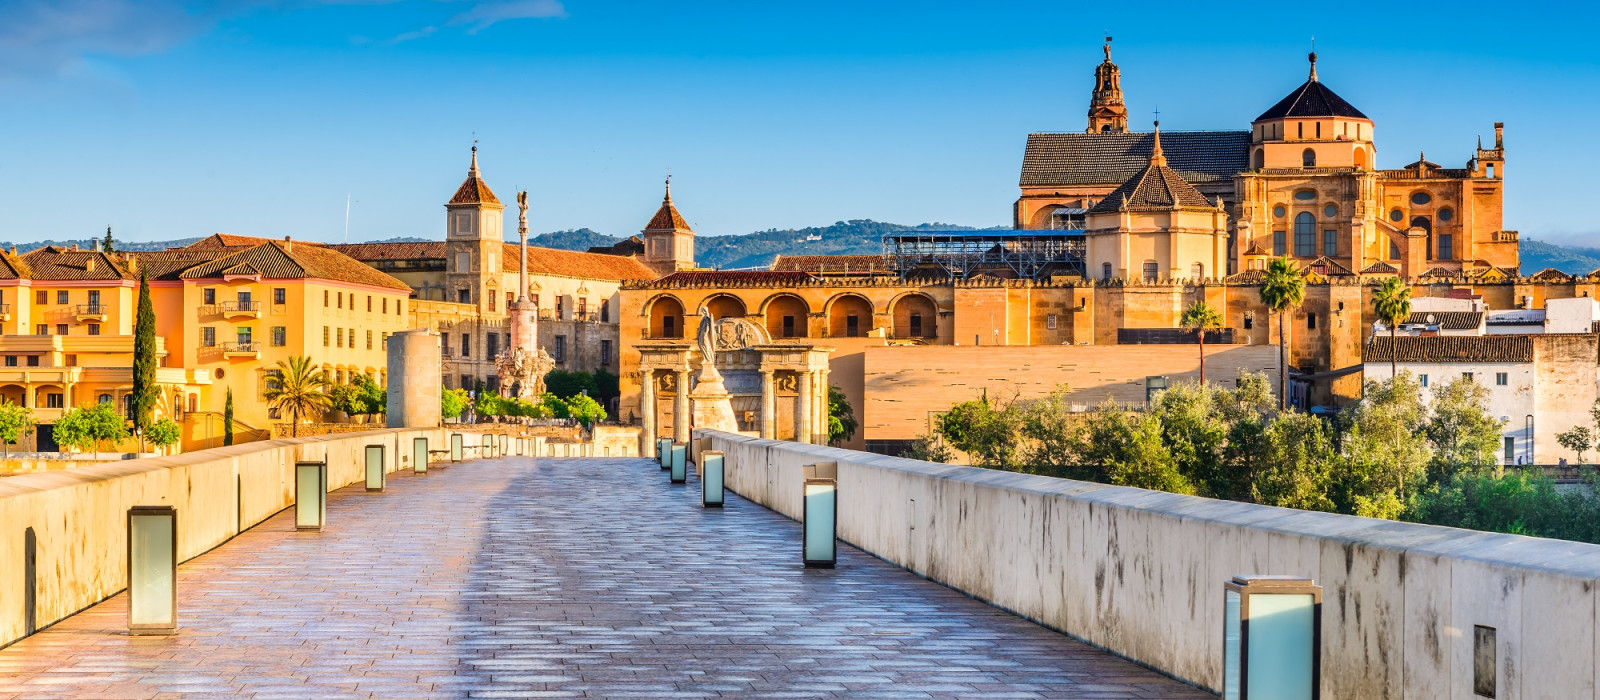 Portugal and Spain: Historical Wonders Tour Trip 1